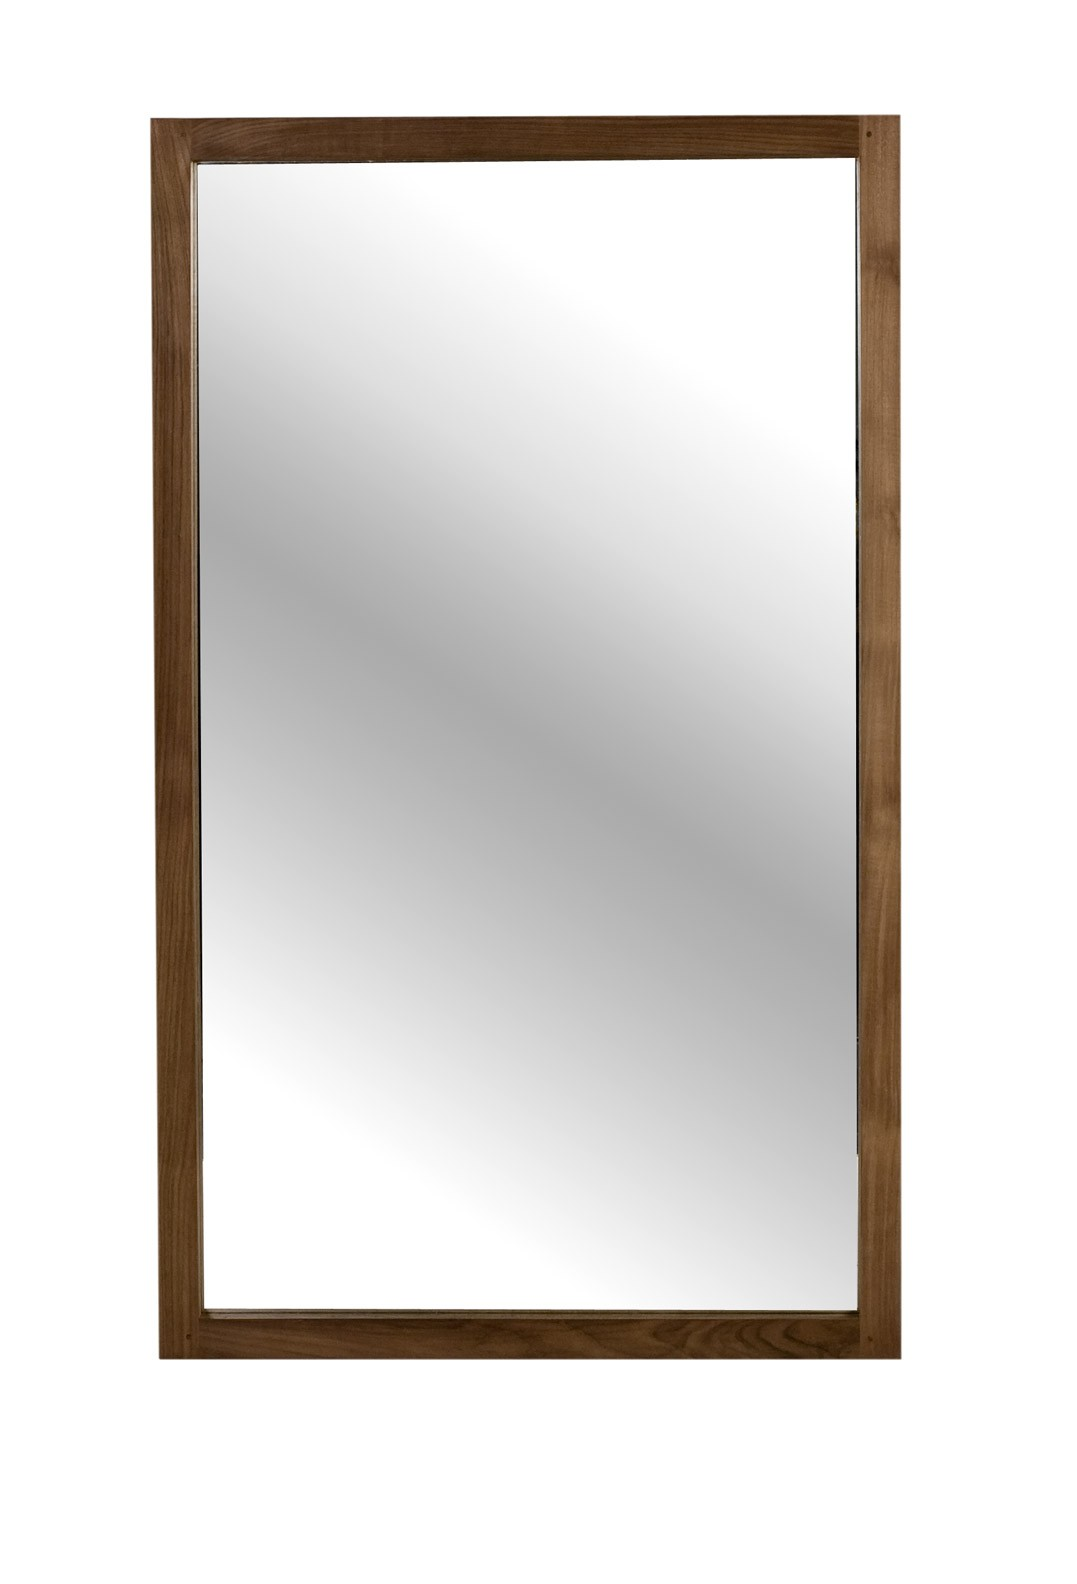 Light frame d 39 ethnicraft miroir hauteur 150cm for Miroir 1 metre